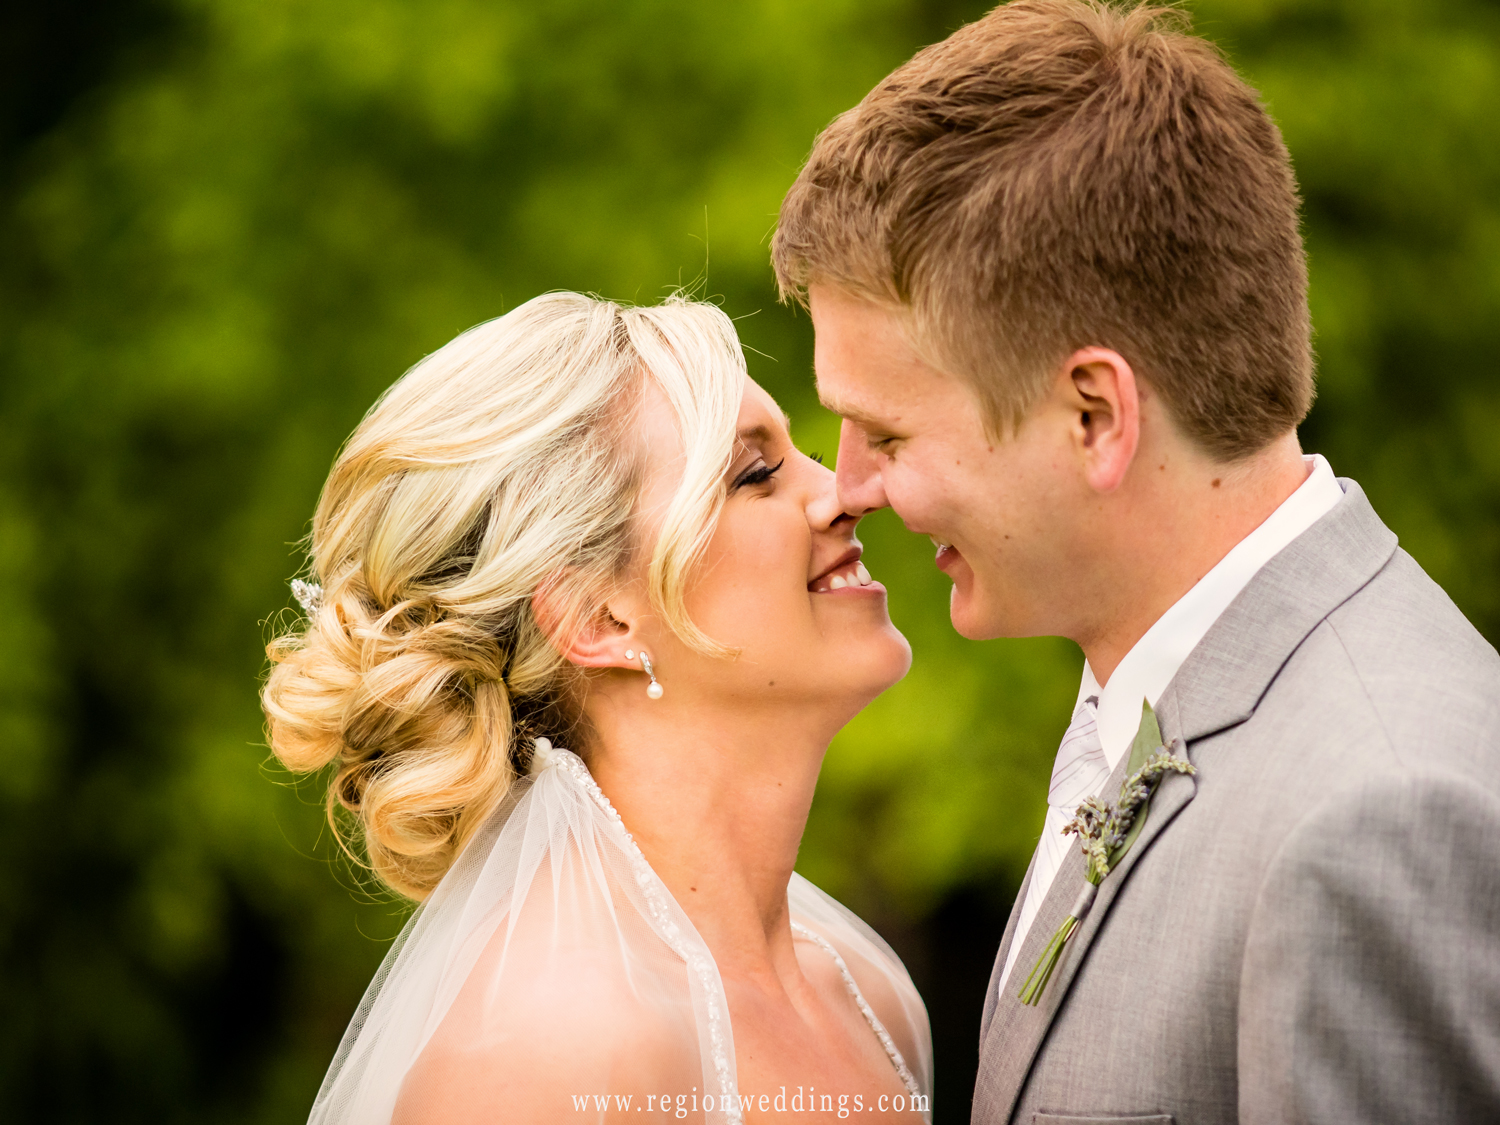 The bride and groom flirt in this candid wedding photo.